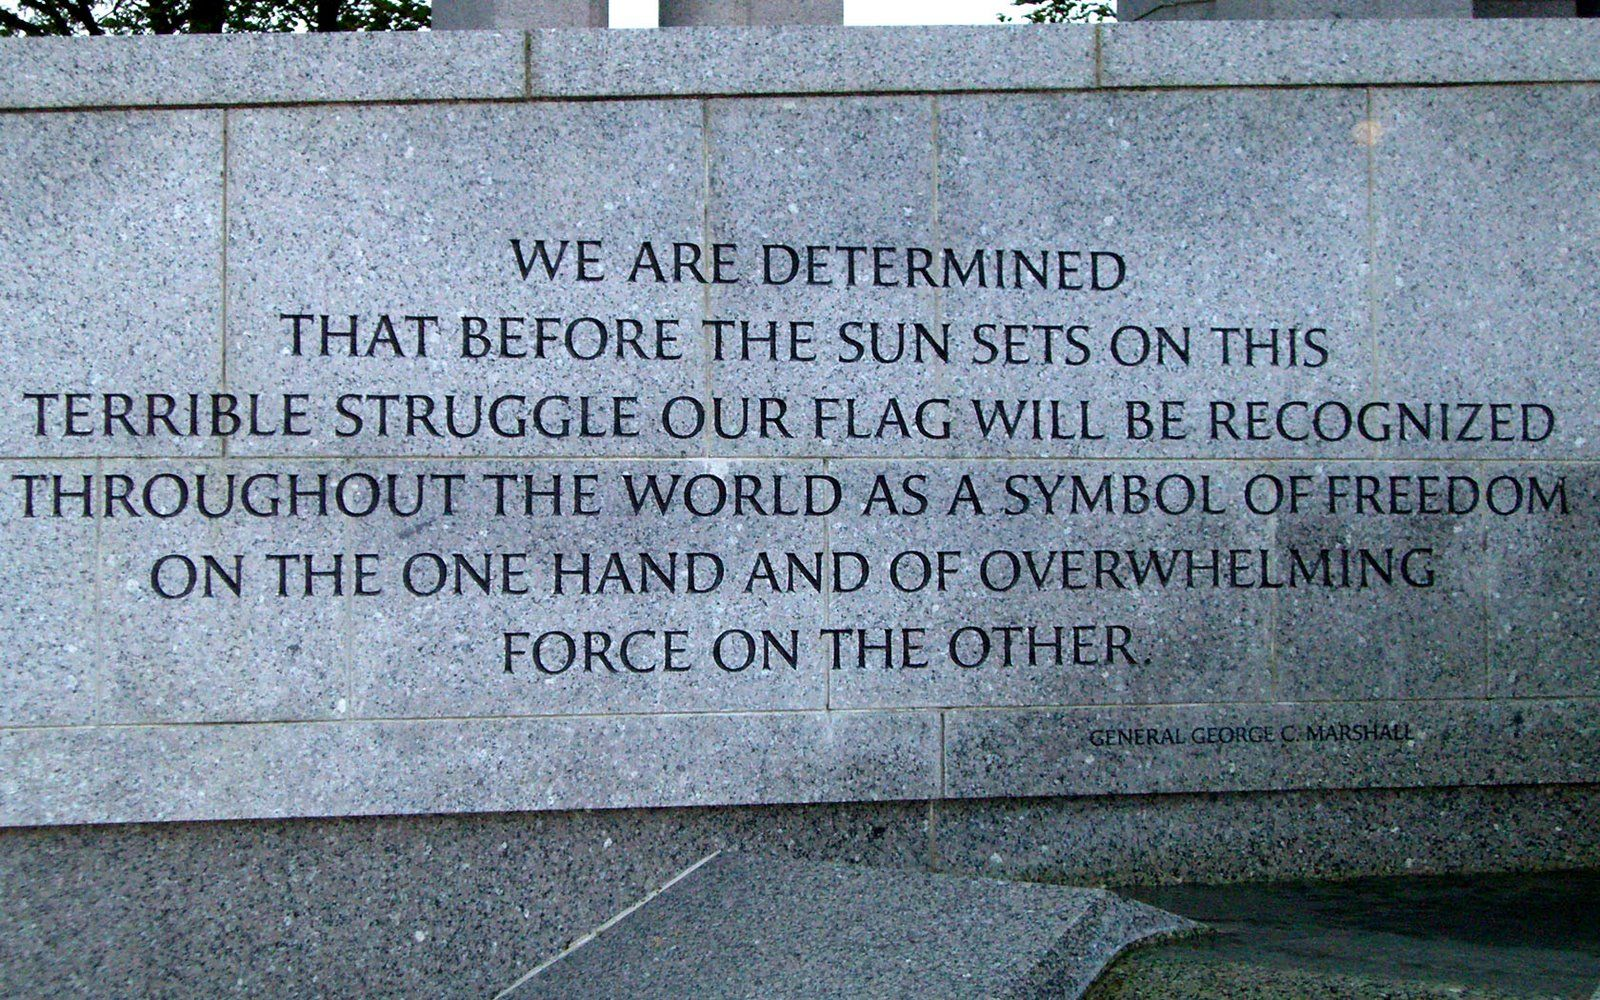 General george c marshall quotes - Free Widescreen Wallpapers World War Ii Memorial General George C Marshall Quote 1680 X 1050